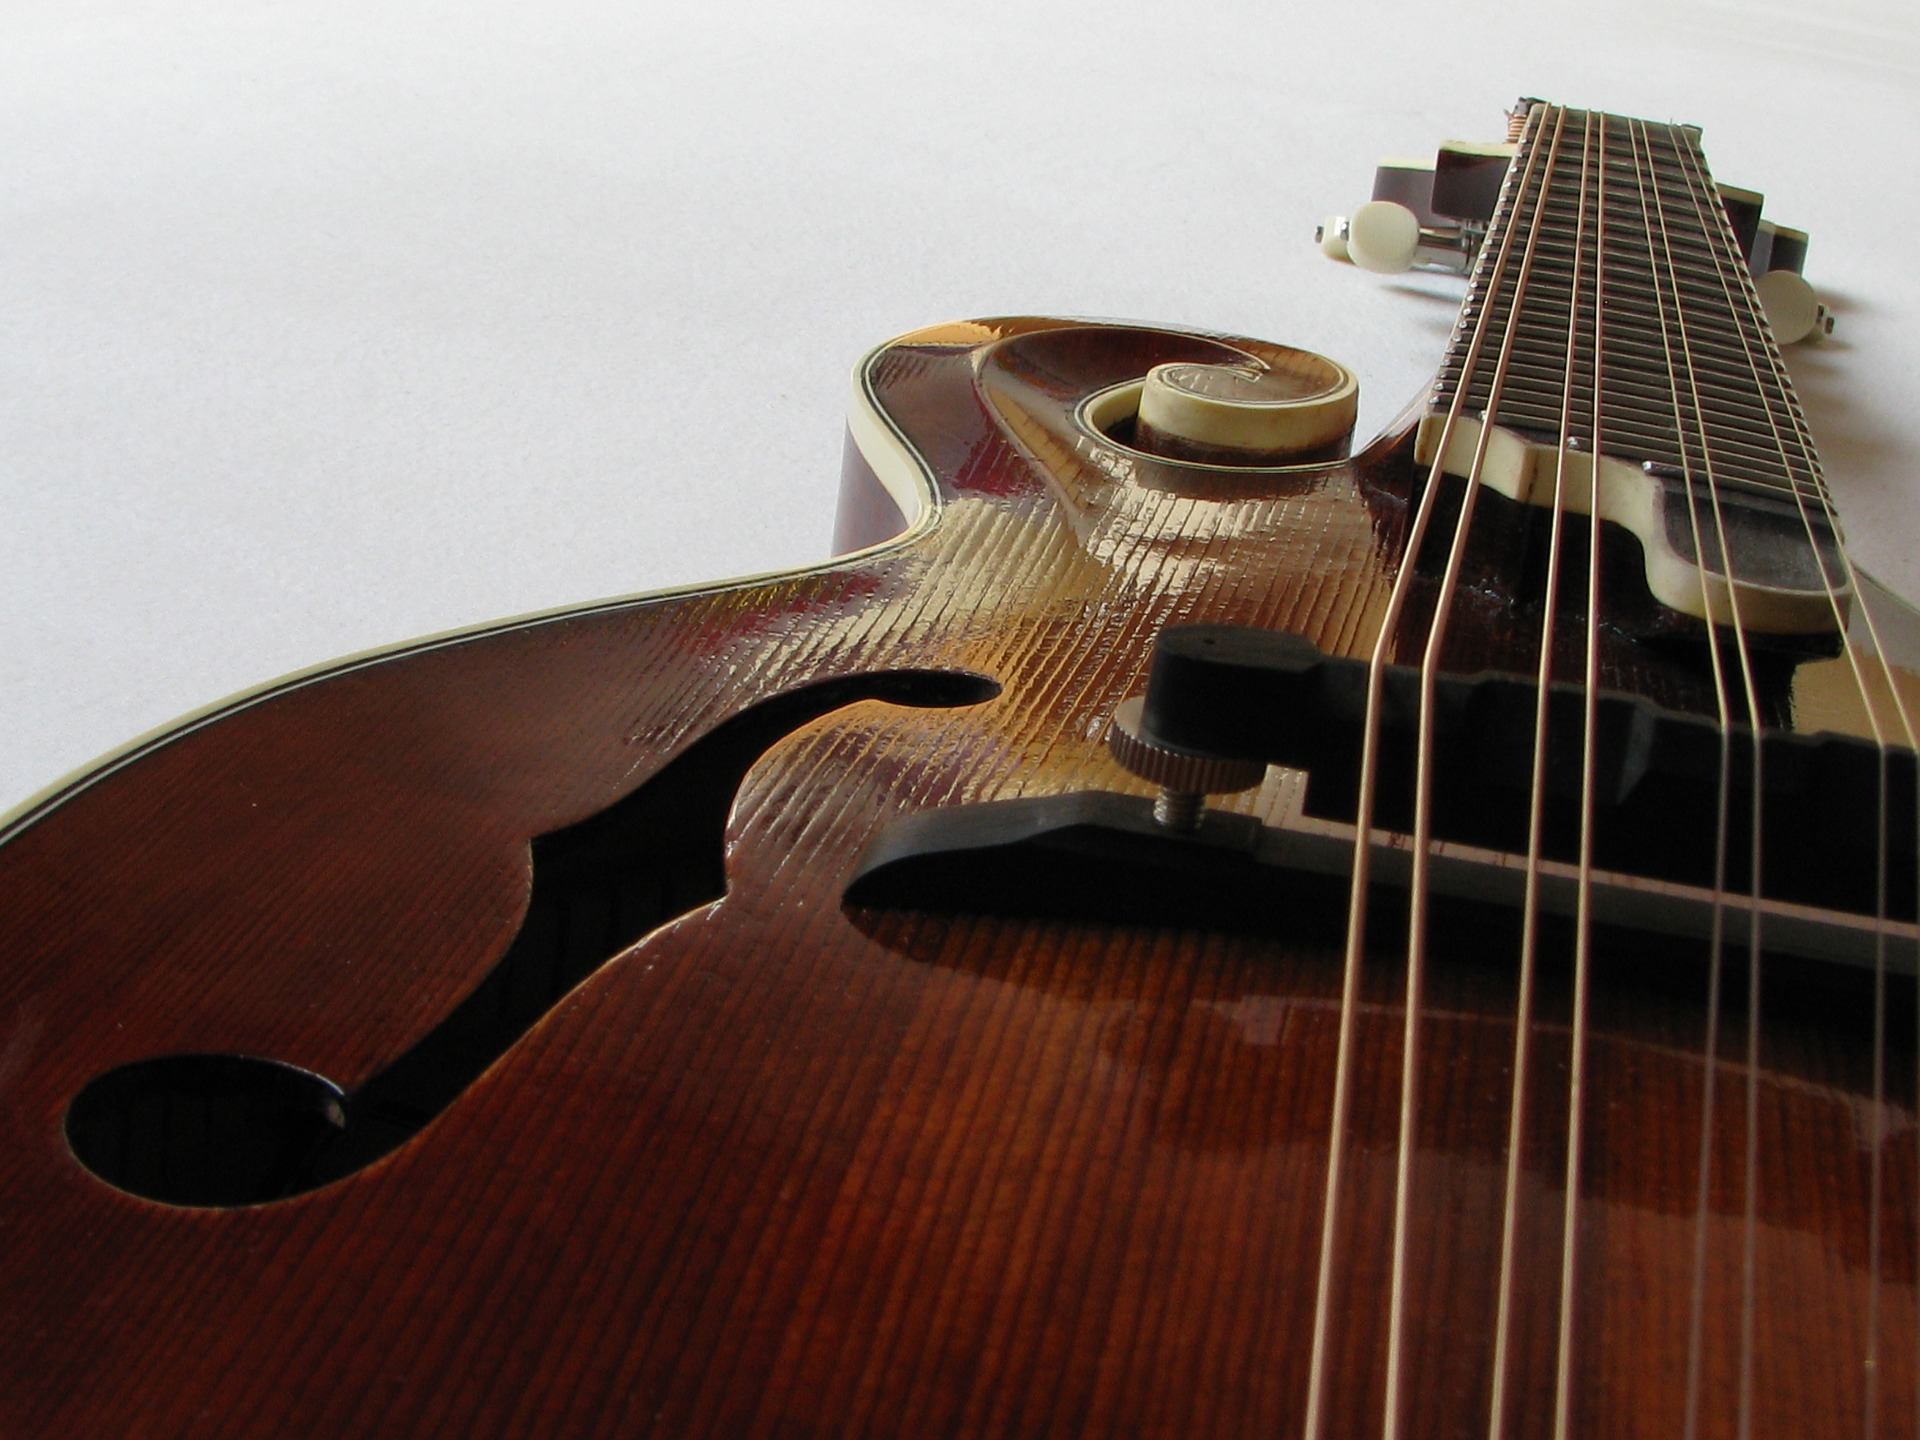 how to play mandolin for beginners - f style